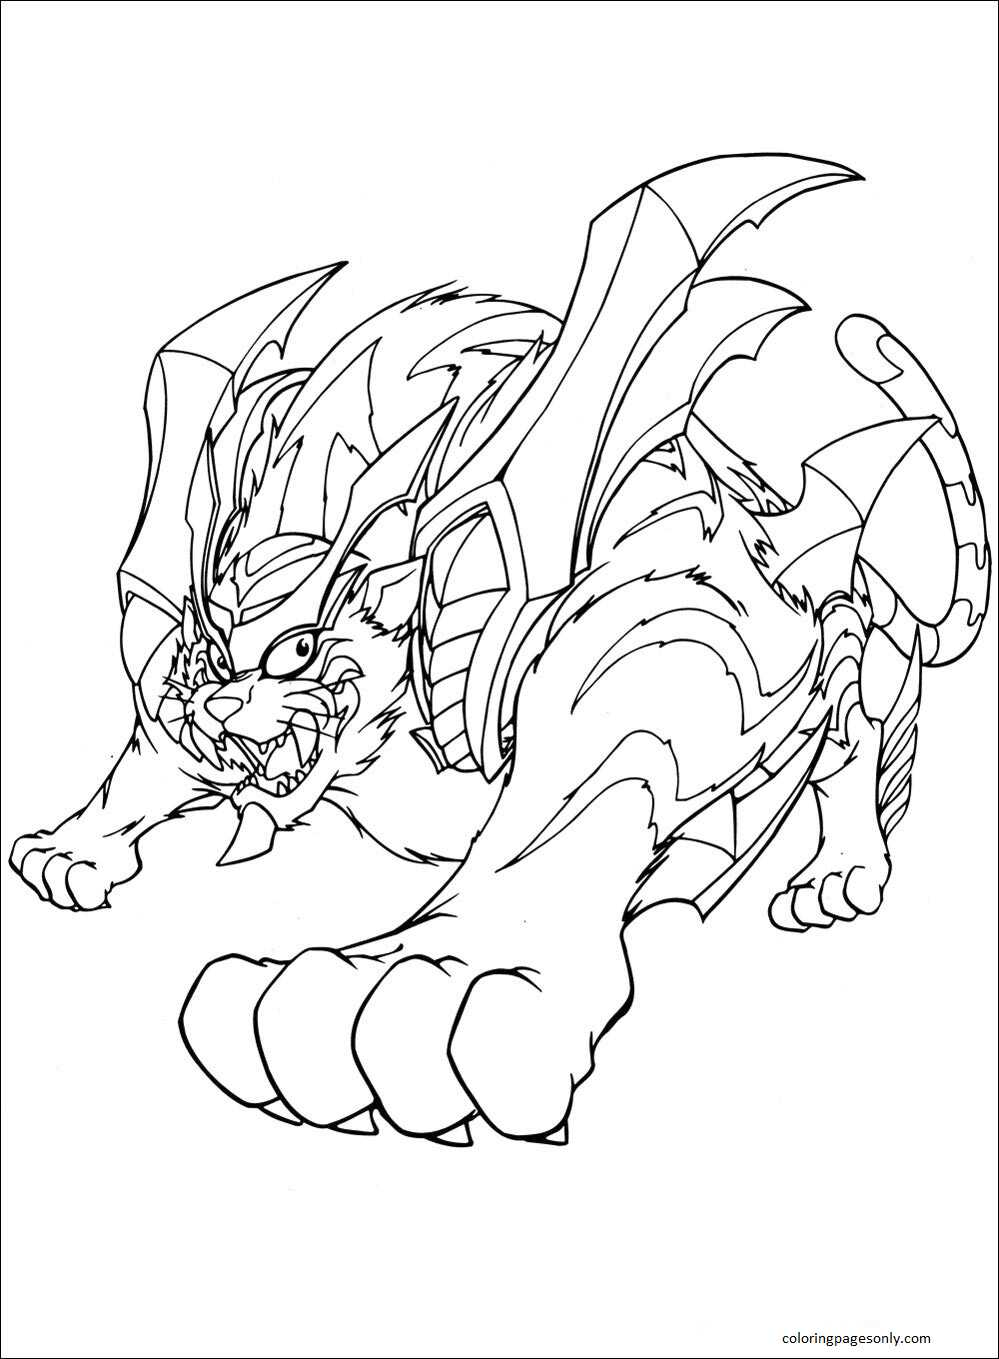 Beyblade Burst 23 Coloring Page